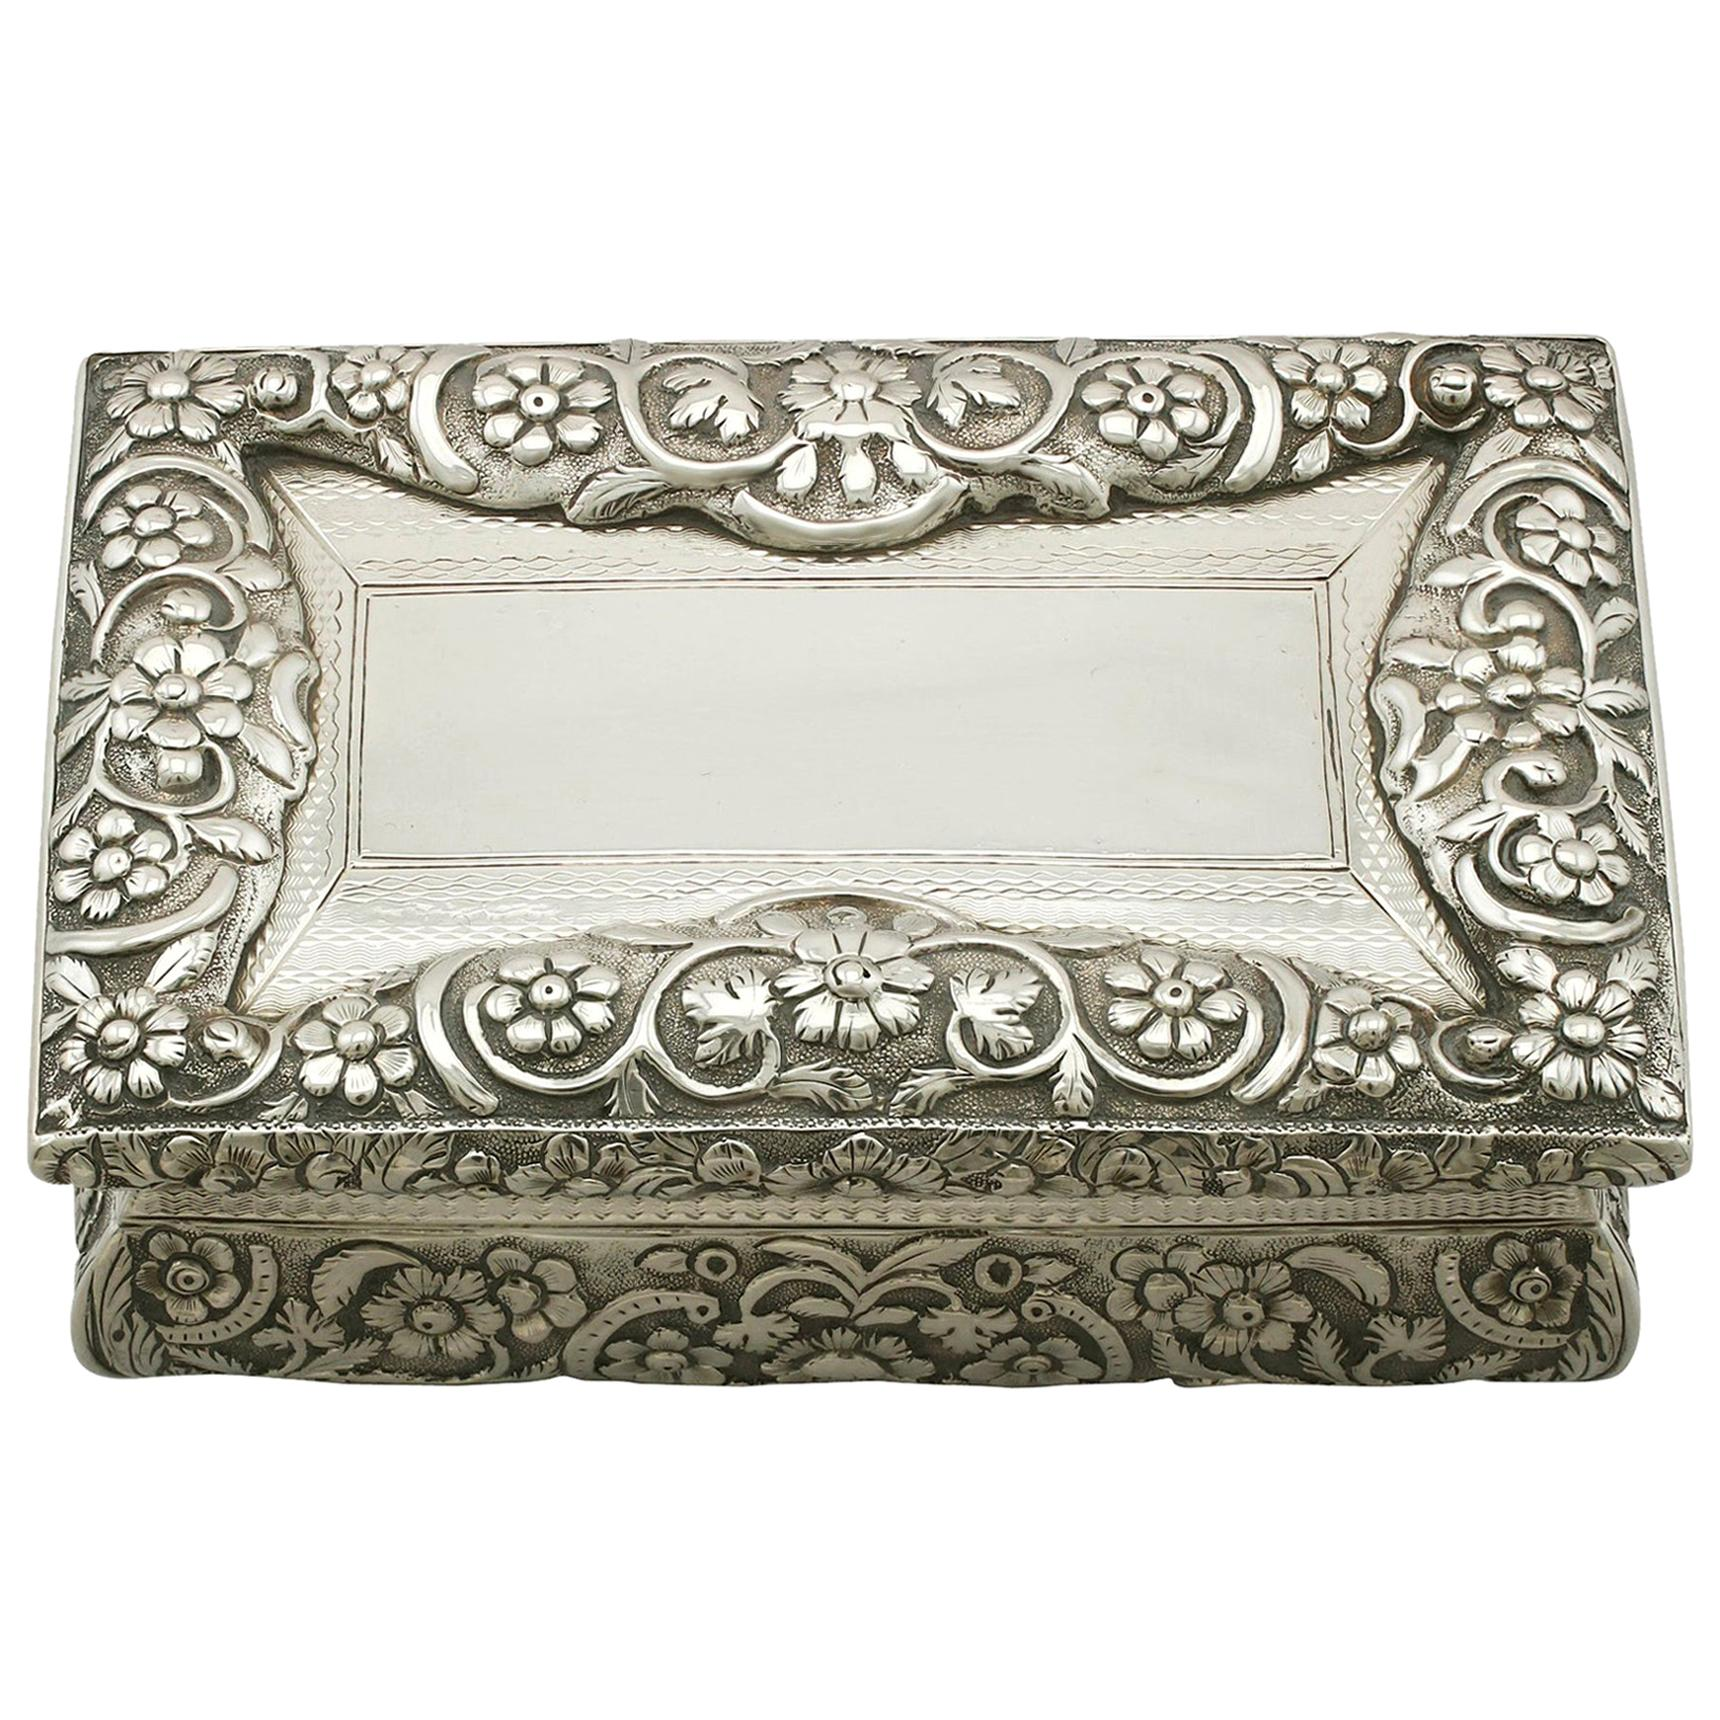 Antique Sterling Silver Table Snuff Box